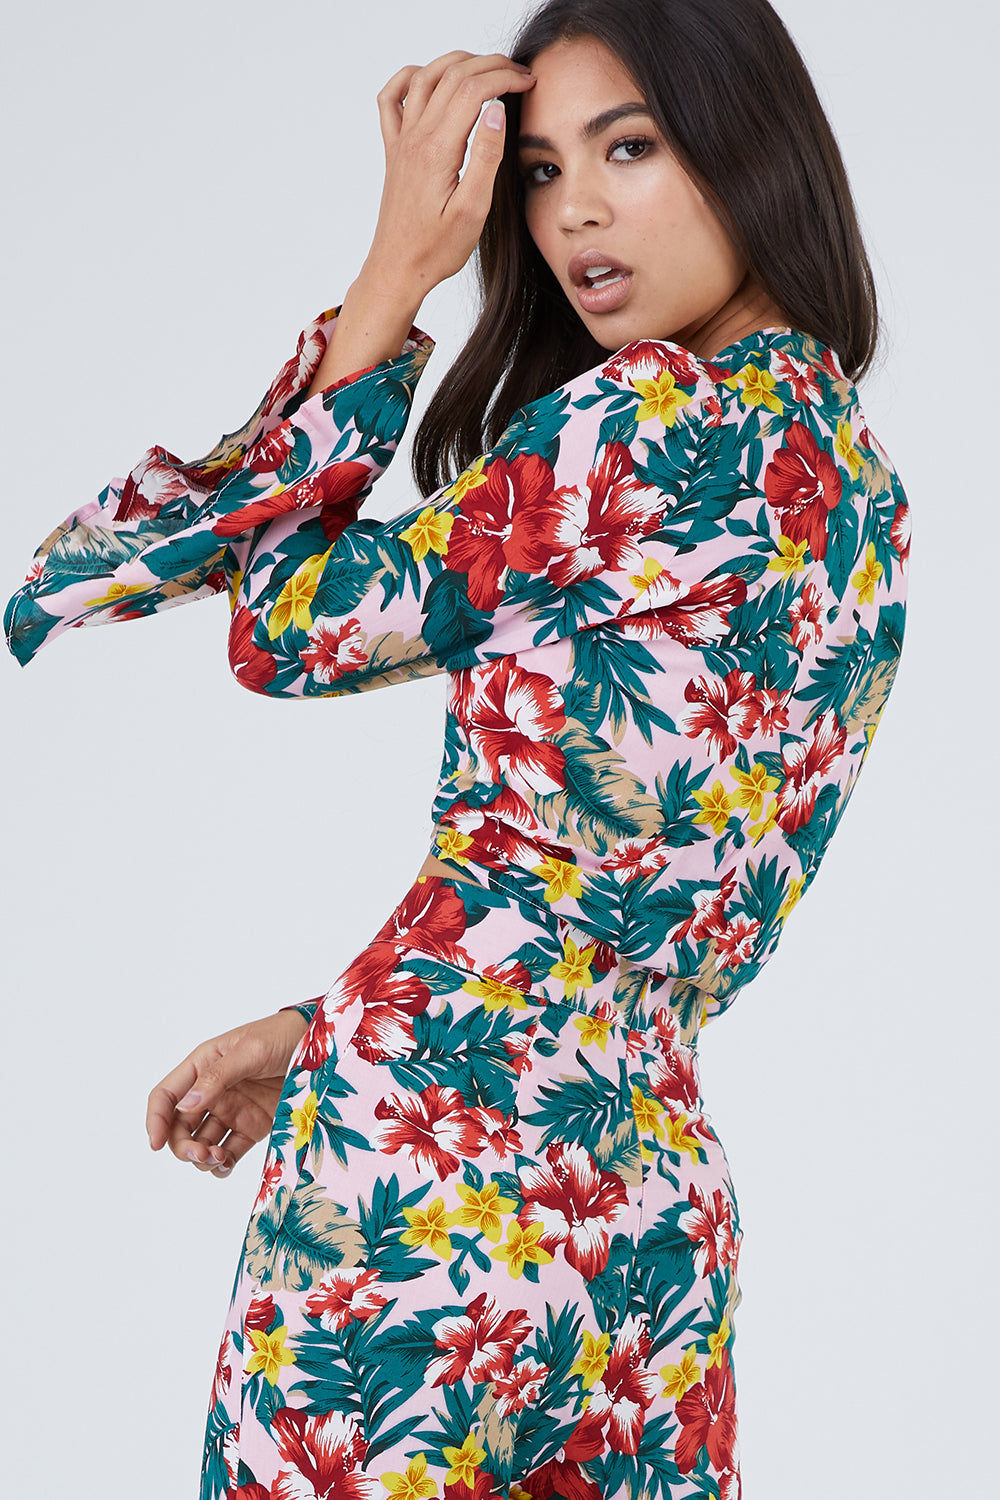 XIX PALMS Hana Bell Sleeves Front Knot Crop Top - Vibrant Floral Print Top | Vibrant Floral Print | XIX Palms Hana Bell Sleeves Front Knot Crop Top - Vibrant Floral Print Retro long bell sleeve V-neck front knot top in a vibrant tropical floral print. The seductive deep V-neckline pairs perfectly with pendant or lariat necklaces while showing off your décolletage. Adjustable front knot tie Back View